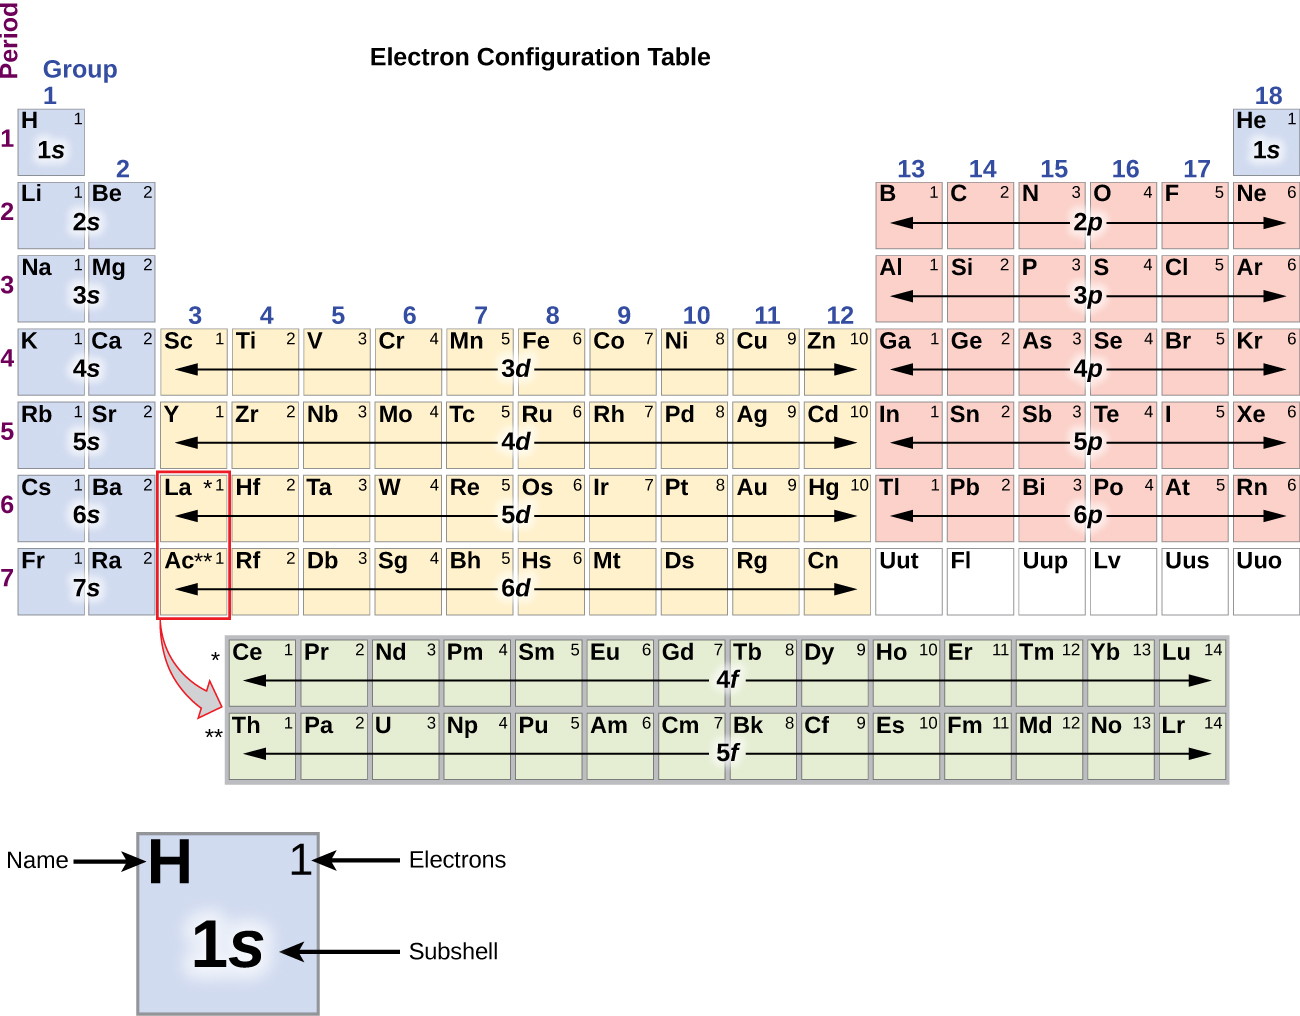 "In this figure, a periodic table is shown that is entitled, ""Electron Configuration Table."" Beneath the table, a square for the element hydrogen is shown enlarged to provide detail. The element symbol, H, is placed in the upper left corner. In the upper right is the number of electrons, 1. The lower central portion of the element square contains the subshell, 1 s. Helium and elements in groups 1 and 2 are shaded blue. In this region, the rows are labeled 1 s through 7 s moving down the table. Groups 3 through 12 are shaded orange, and the rows are labeled 3 d through 6 d moving down the table. Groups 13 through 18, except helium, are shaded pink and are labeled 2 p through 6 p moving down the table. The lanthanide and actinide series across the bottom of the table are shaded grey and are labeled 4 f and 5 f respectively."